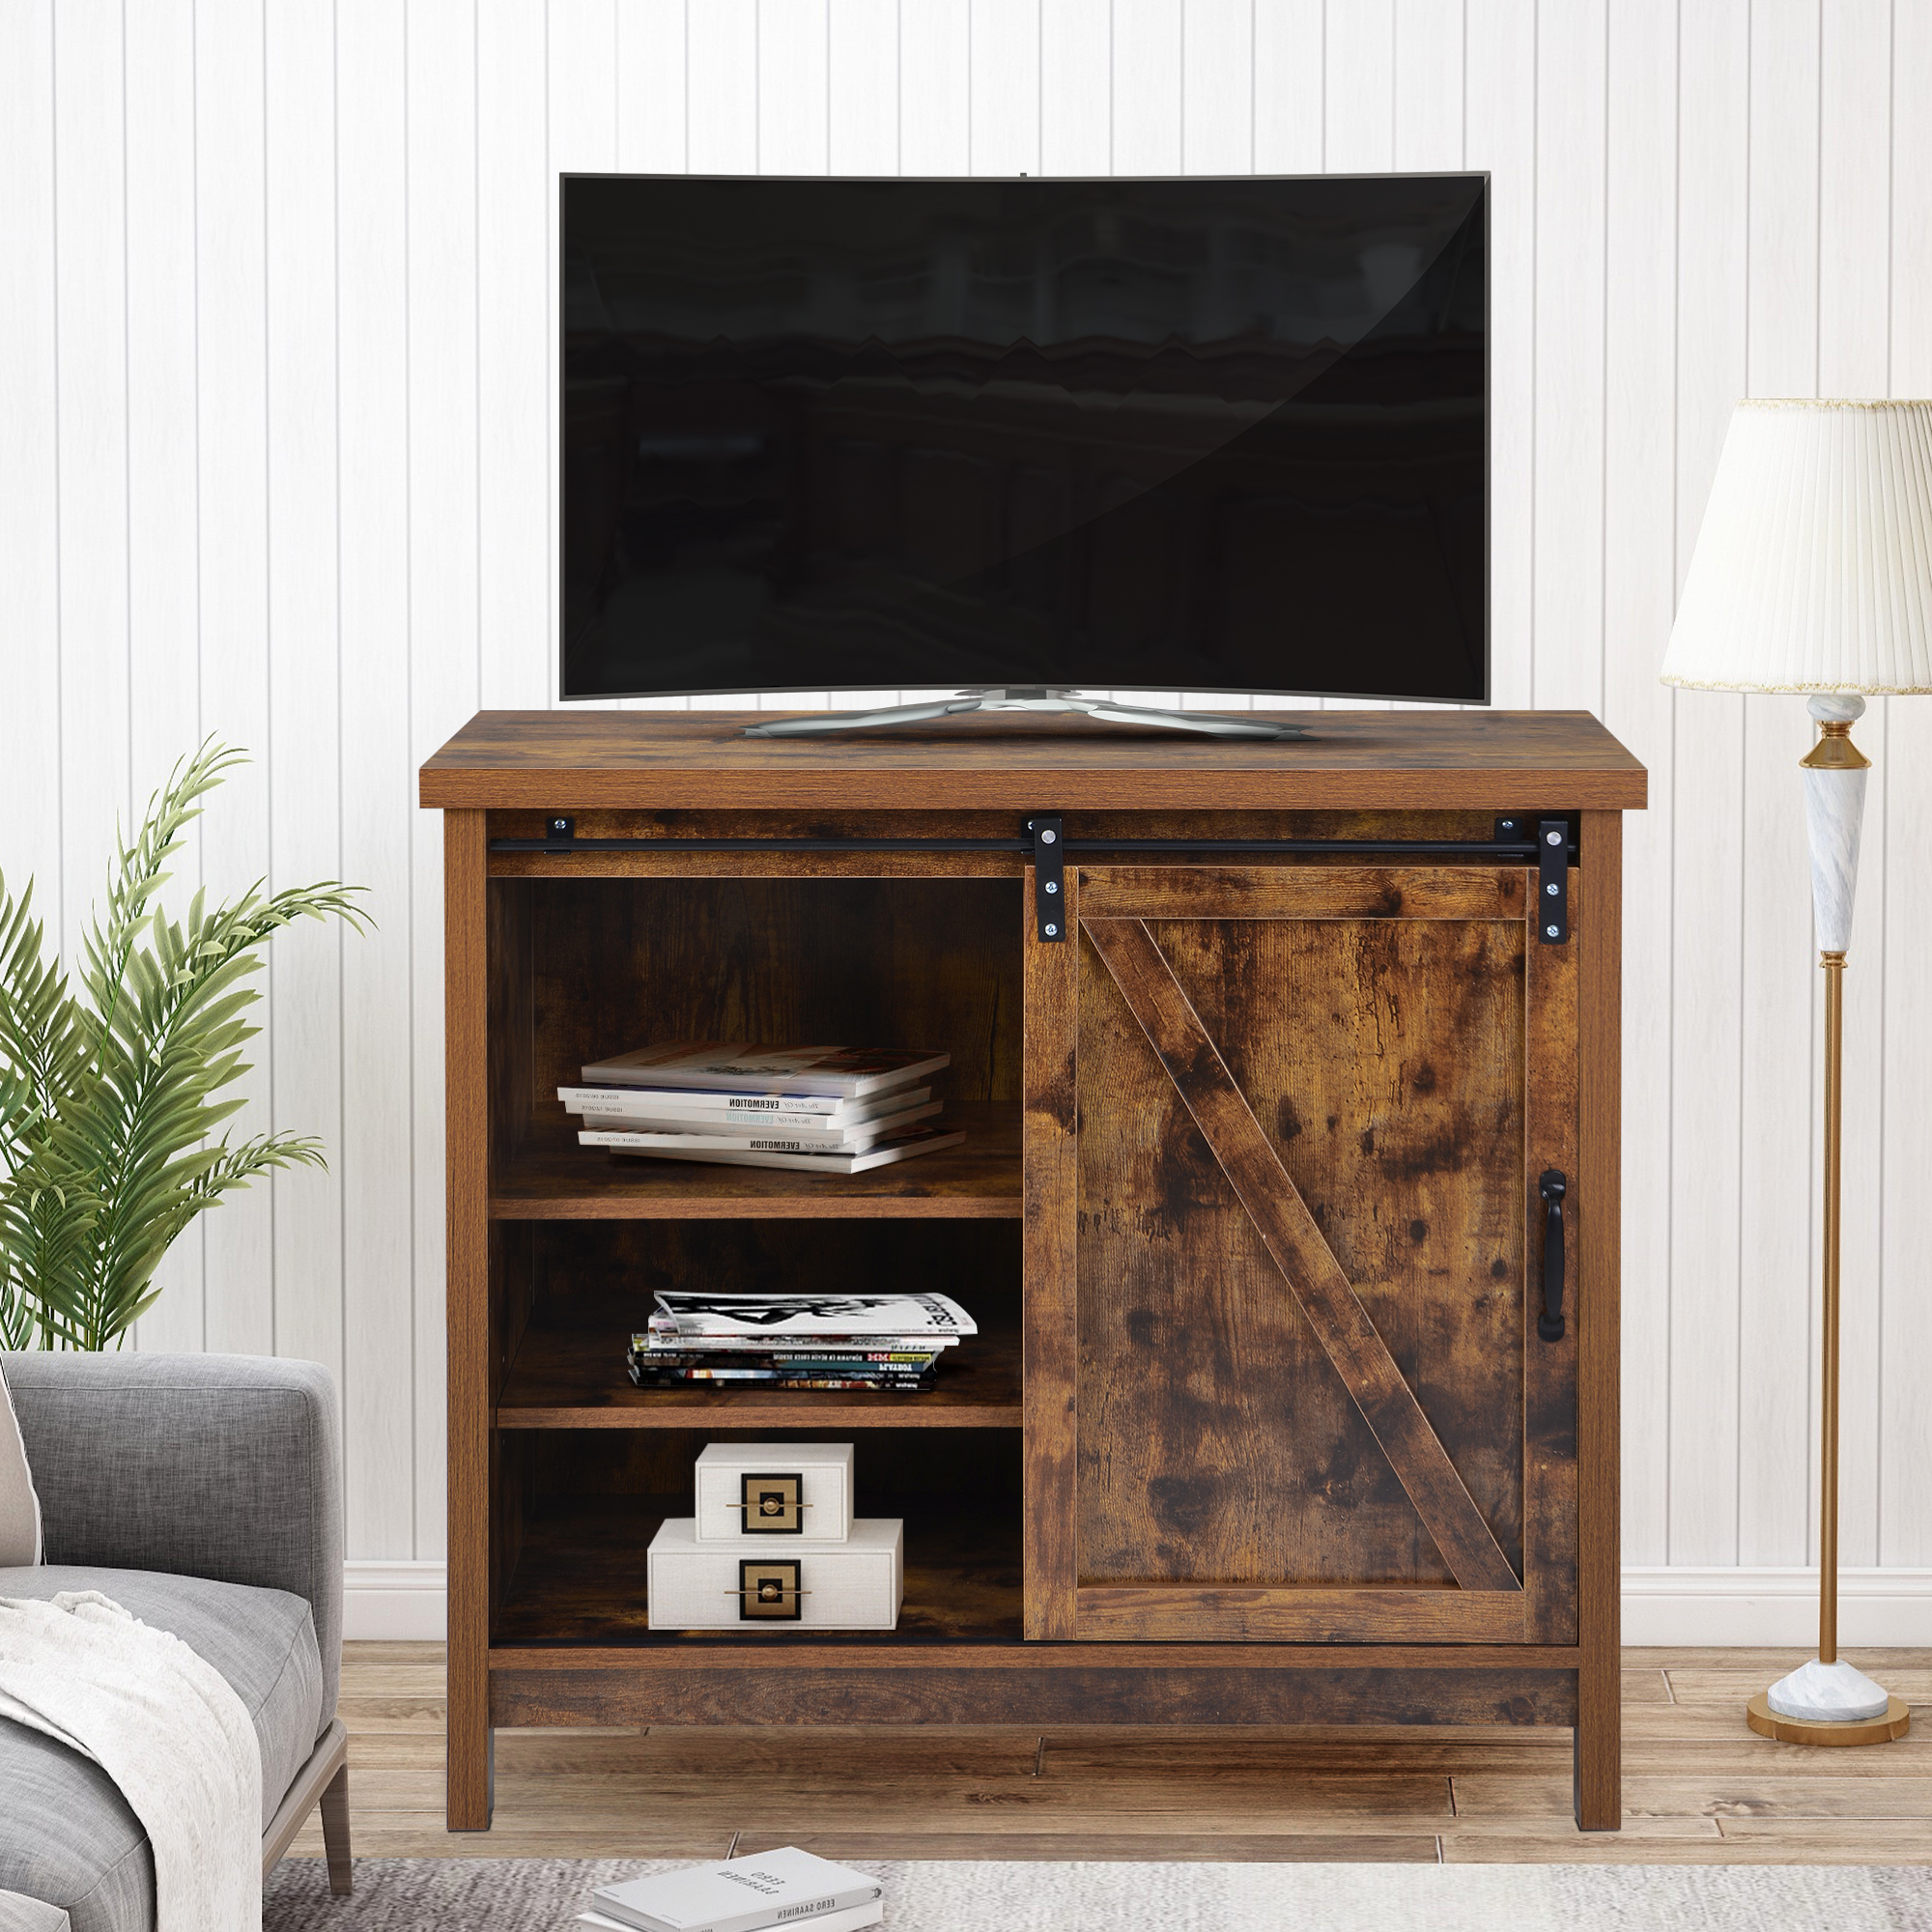 Widely Used Modern Farmhouse Tv Stand, 2020 New 35 Inch Television Throughout Modern Sliding Door Tv Stands (View 7 of 10)